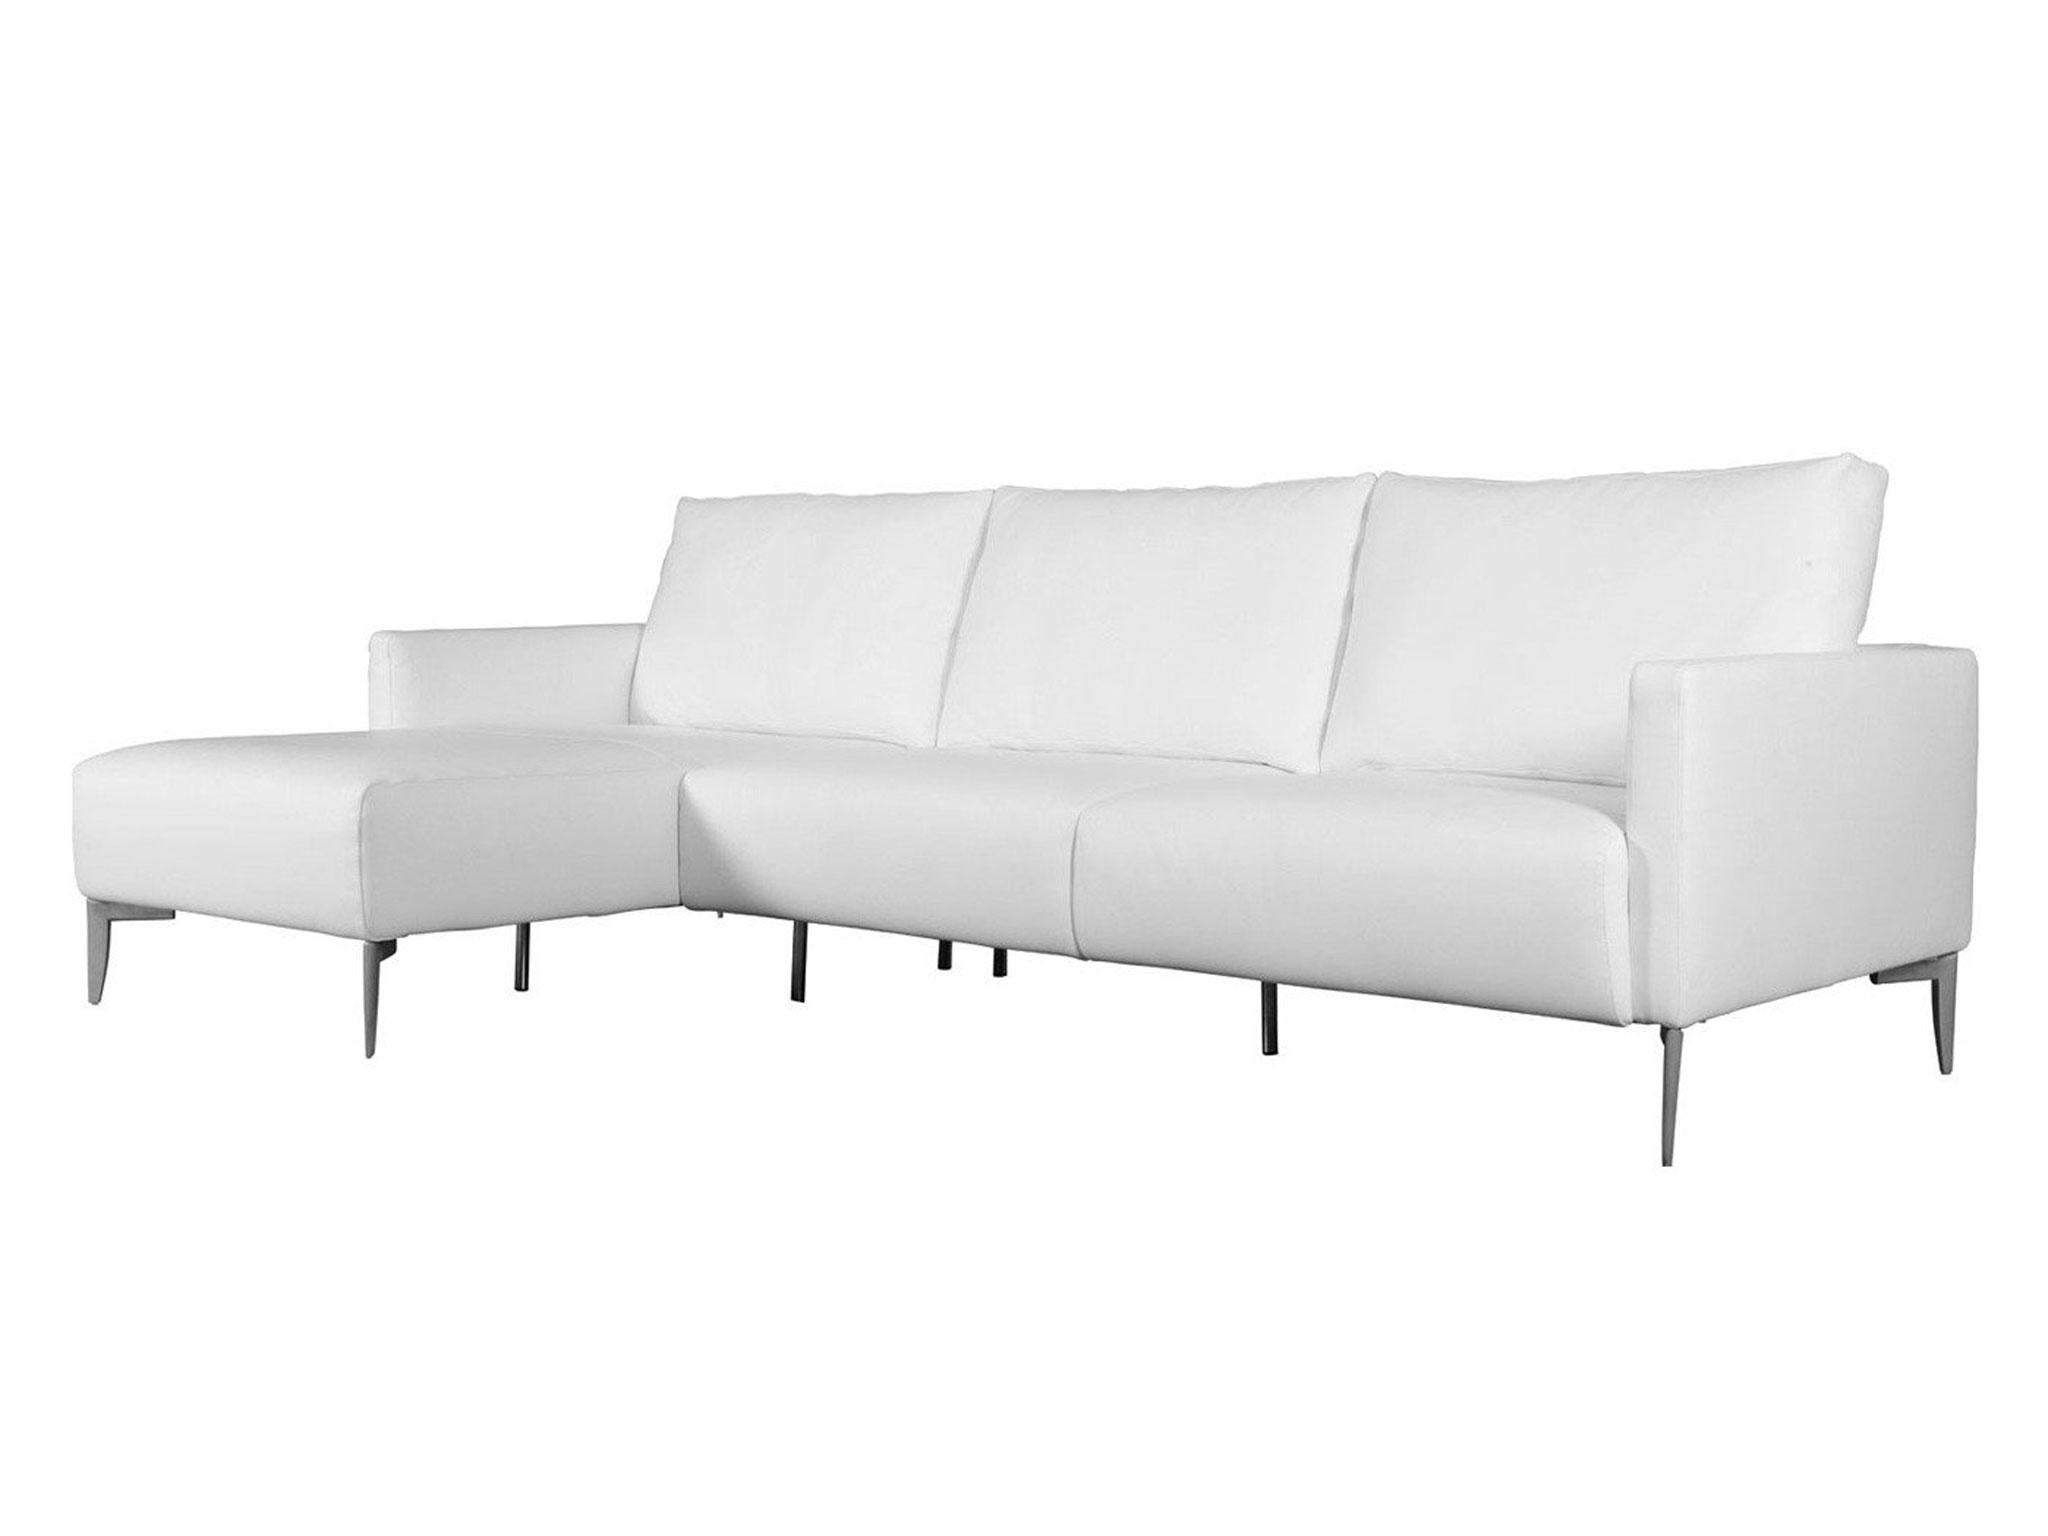 A luxury sofa inspired by italian design amalfi has leather upholstery in seven colour varieties and matt chrome feet the seat and back cushions are